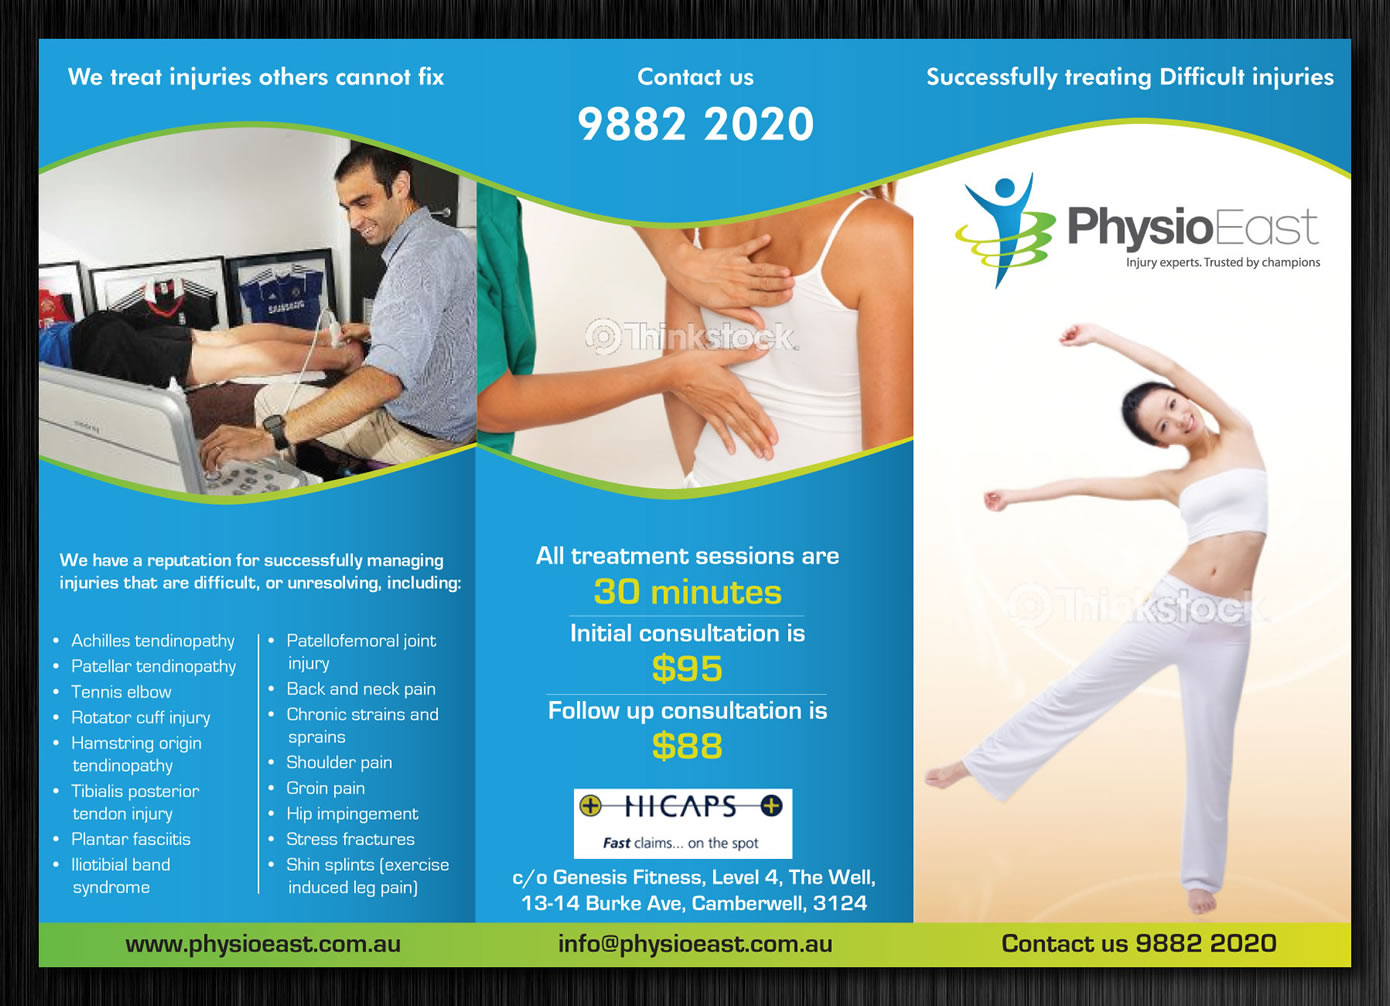 best brochure designs 2020 Professional, Serious, Clinic Brochure Design for a Company by